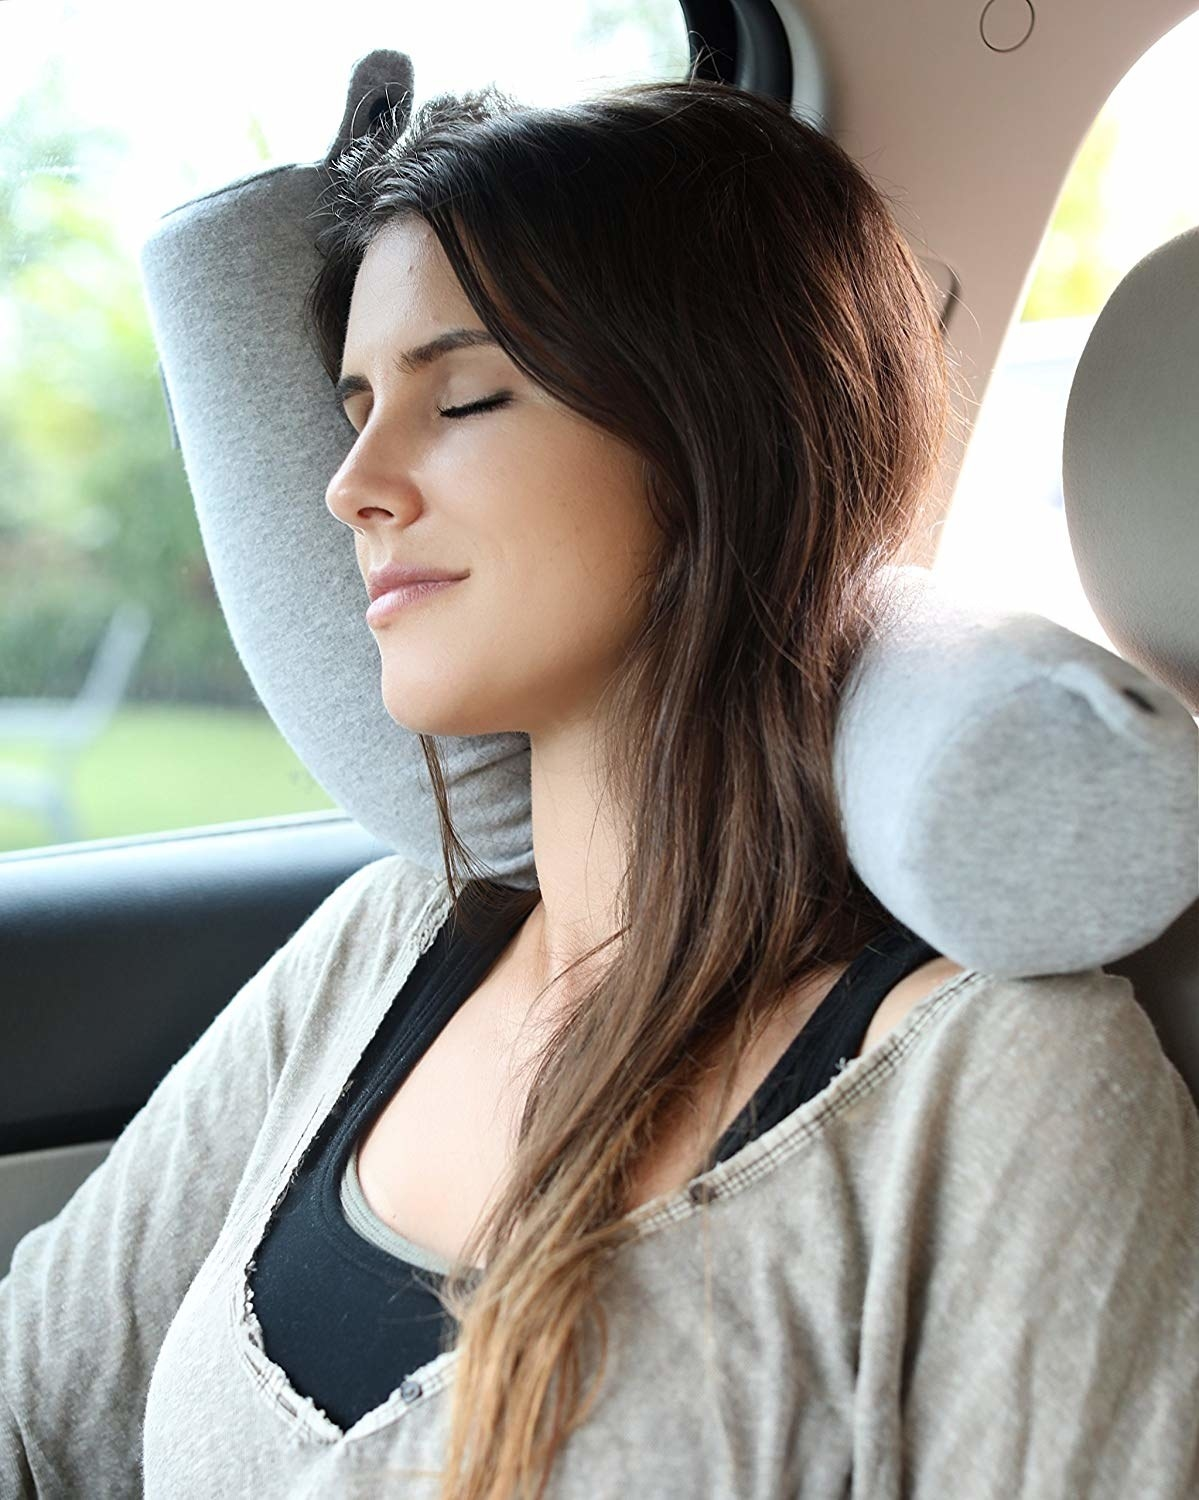 a model using the grey twisted pillow to nap in a car